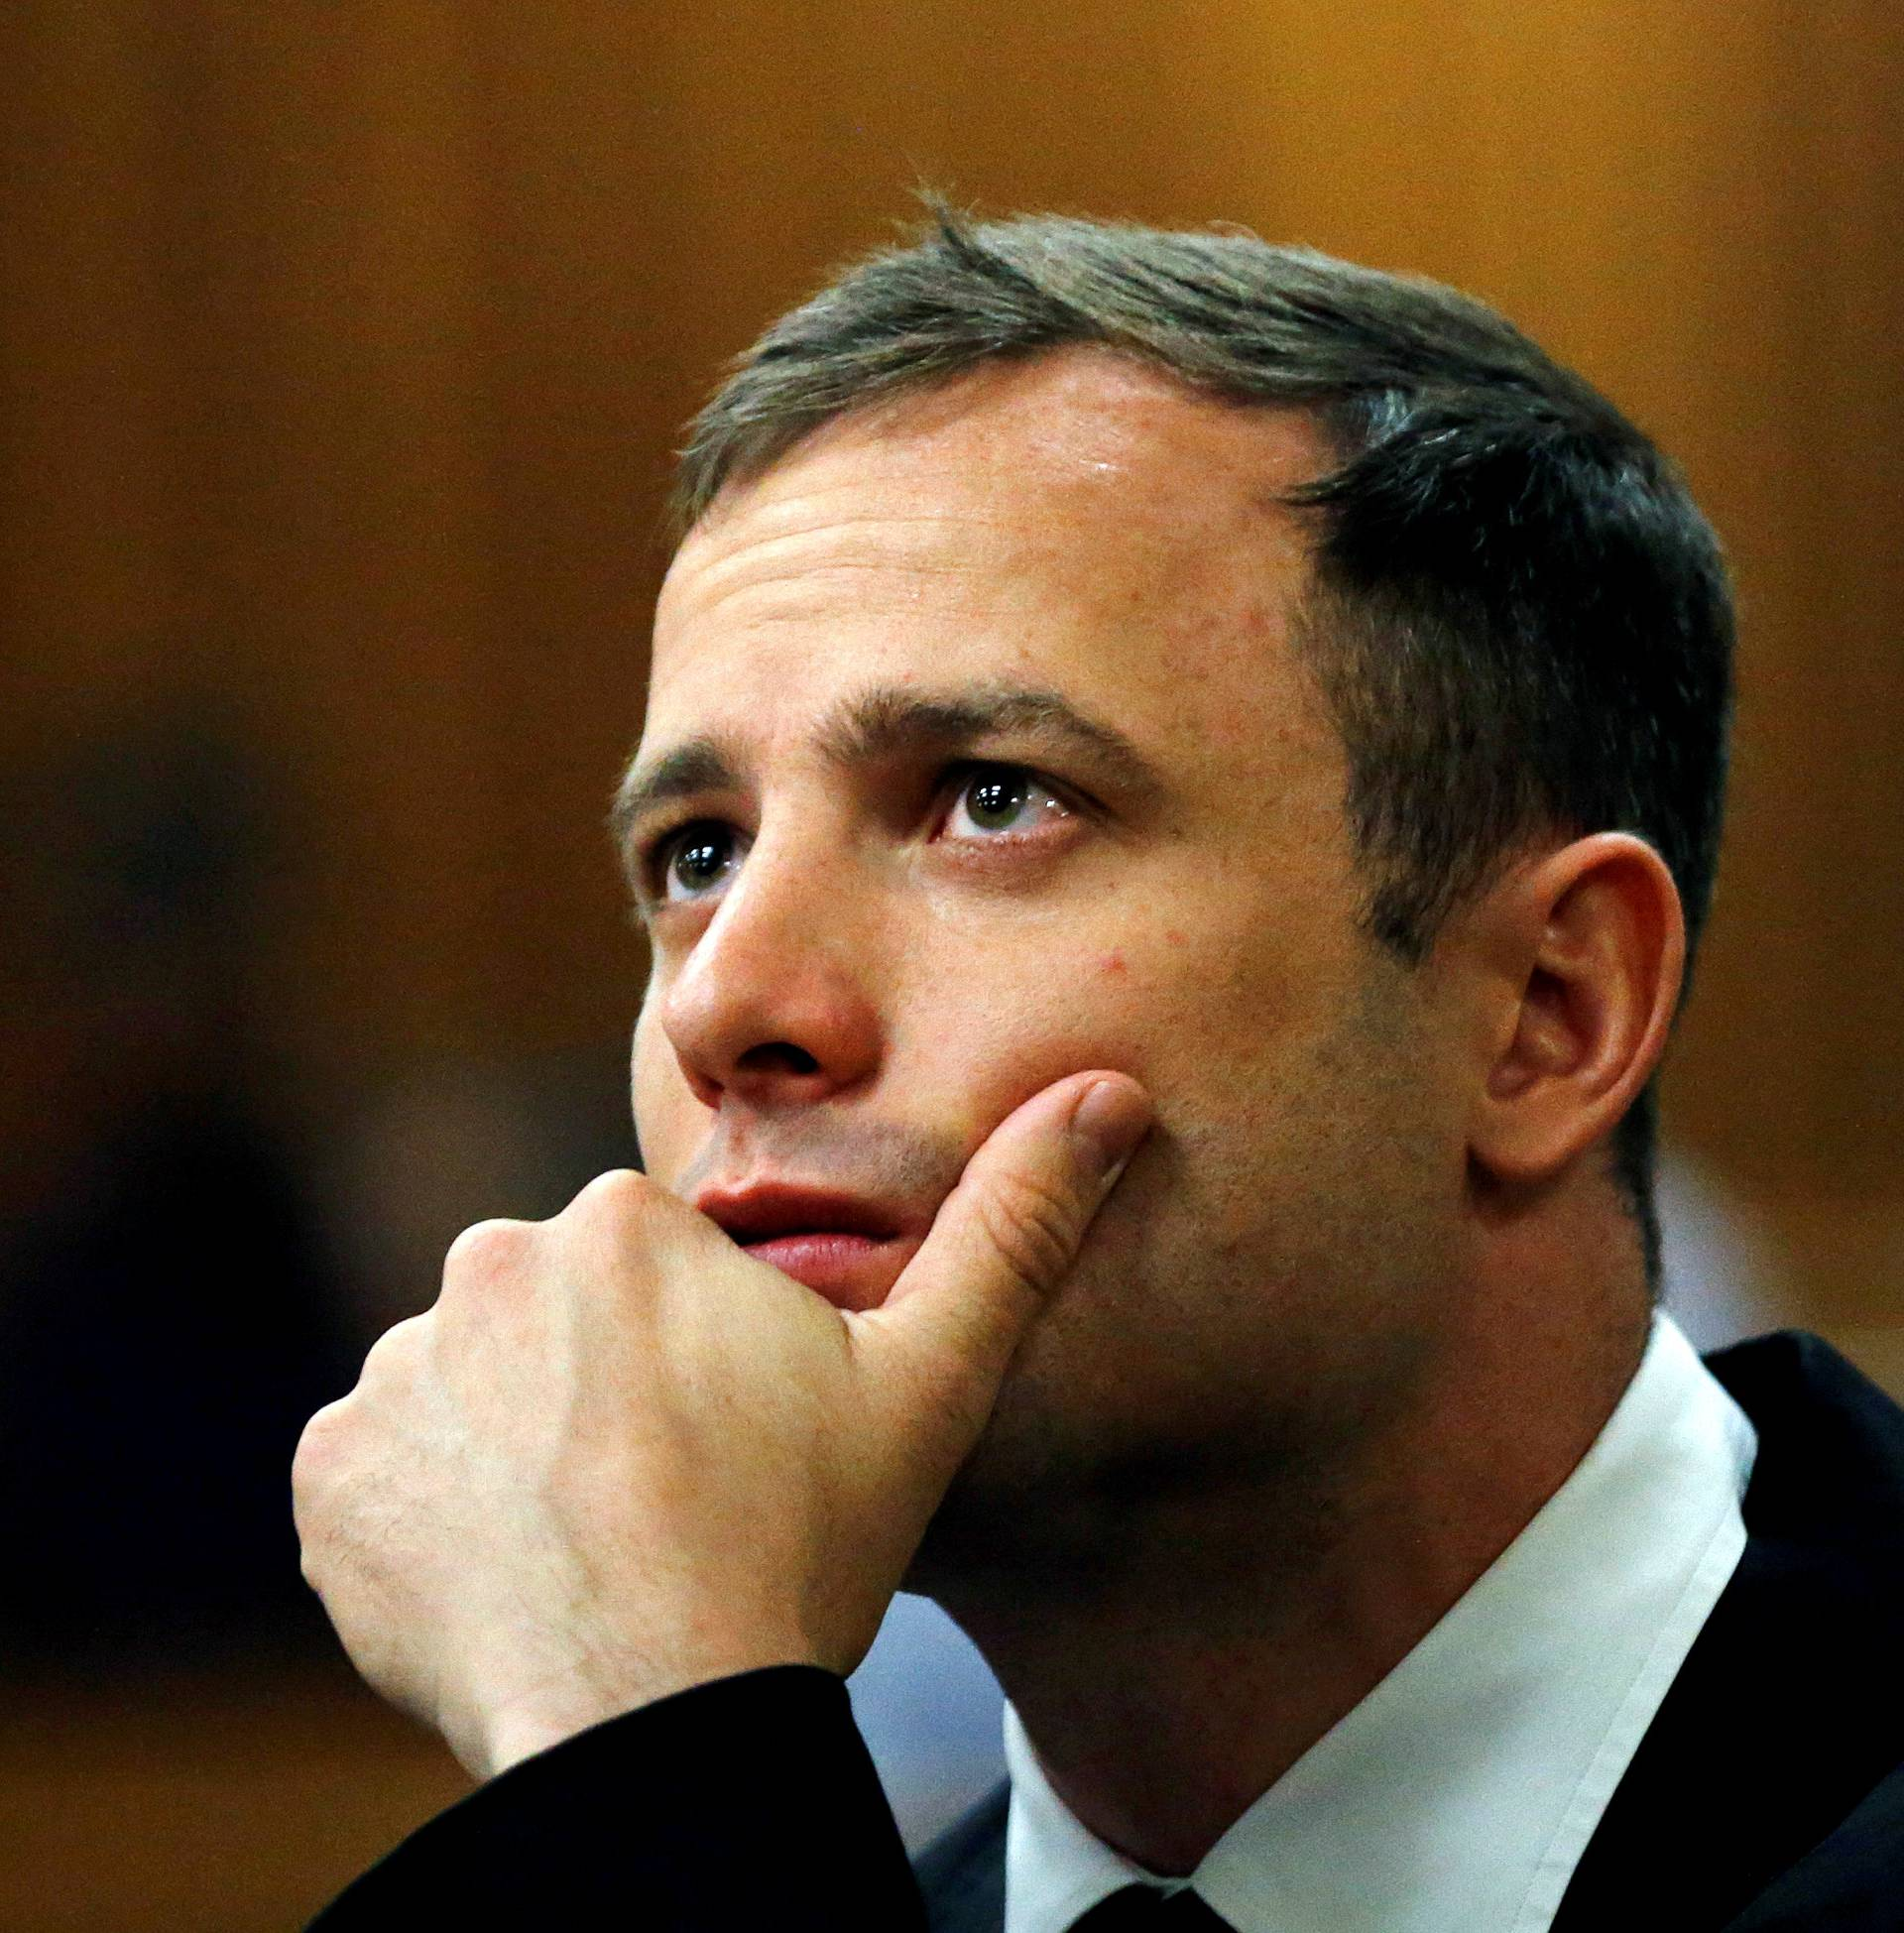 FILE PHOTO: Olympic and Paralympic track star Oscar Pistorius looks on ahead of his sentencing hearing in Pretoria